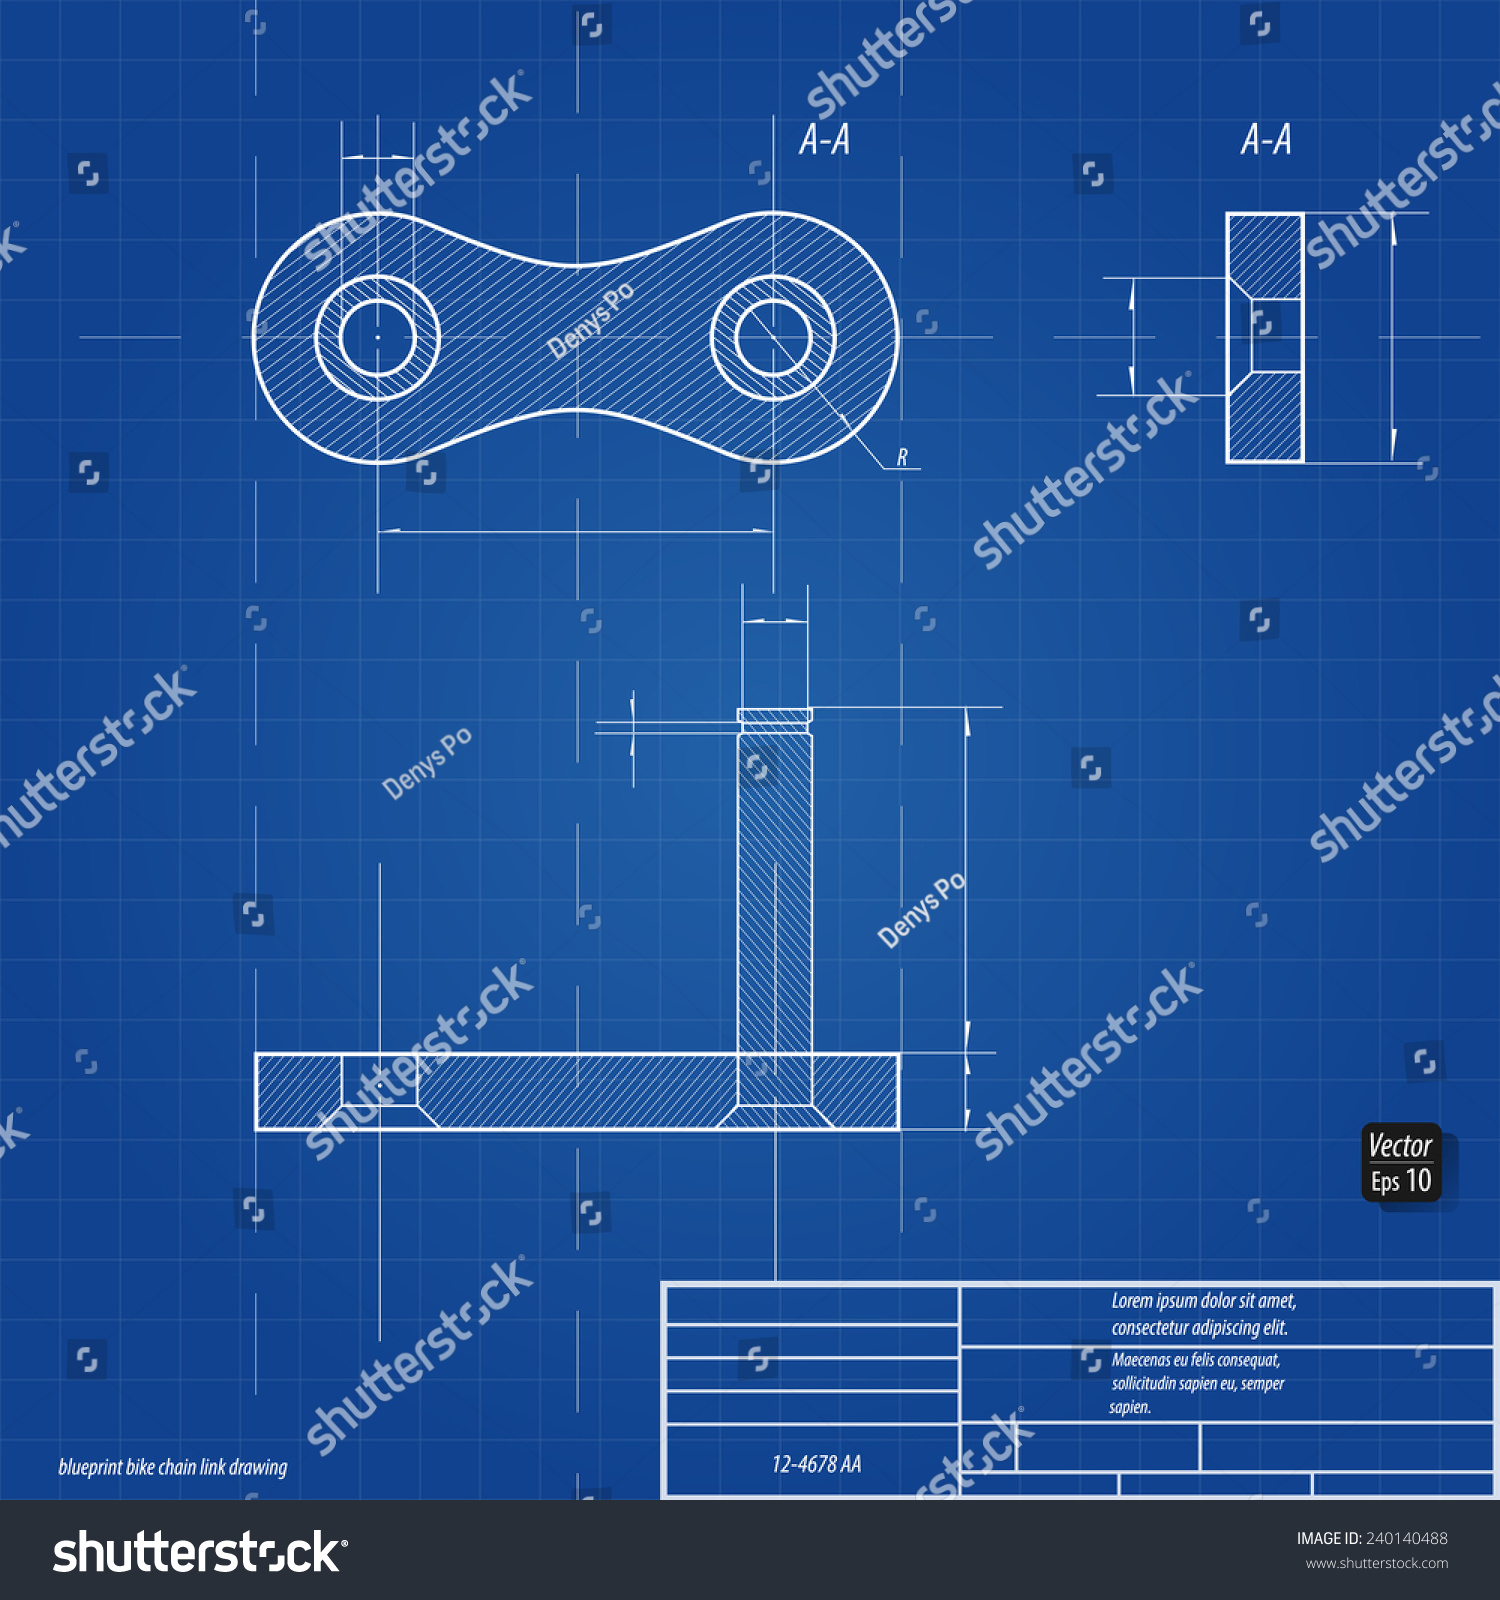 Blueprint bike chain link drawing eps vectores en stock 240140488 blueprint bike chain link drawing eps 10 malvernweather Image collections